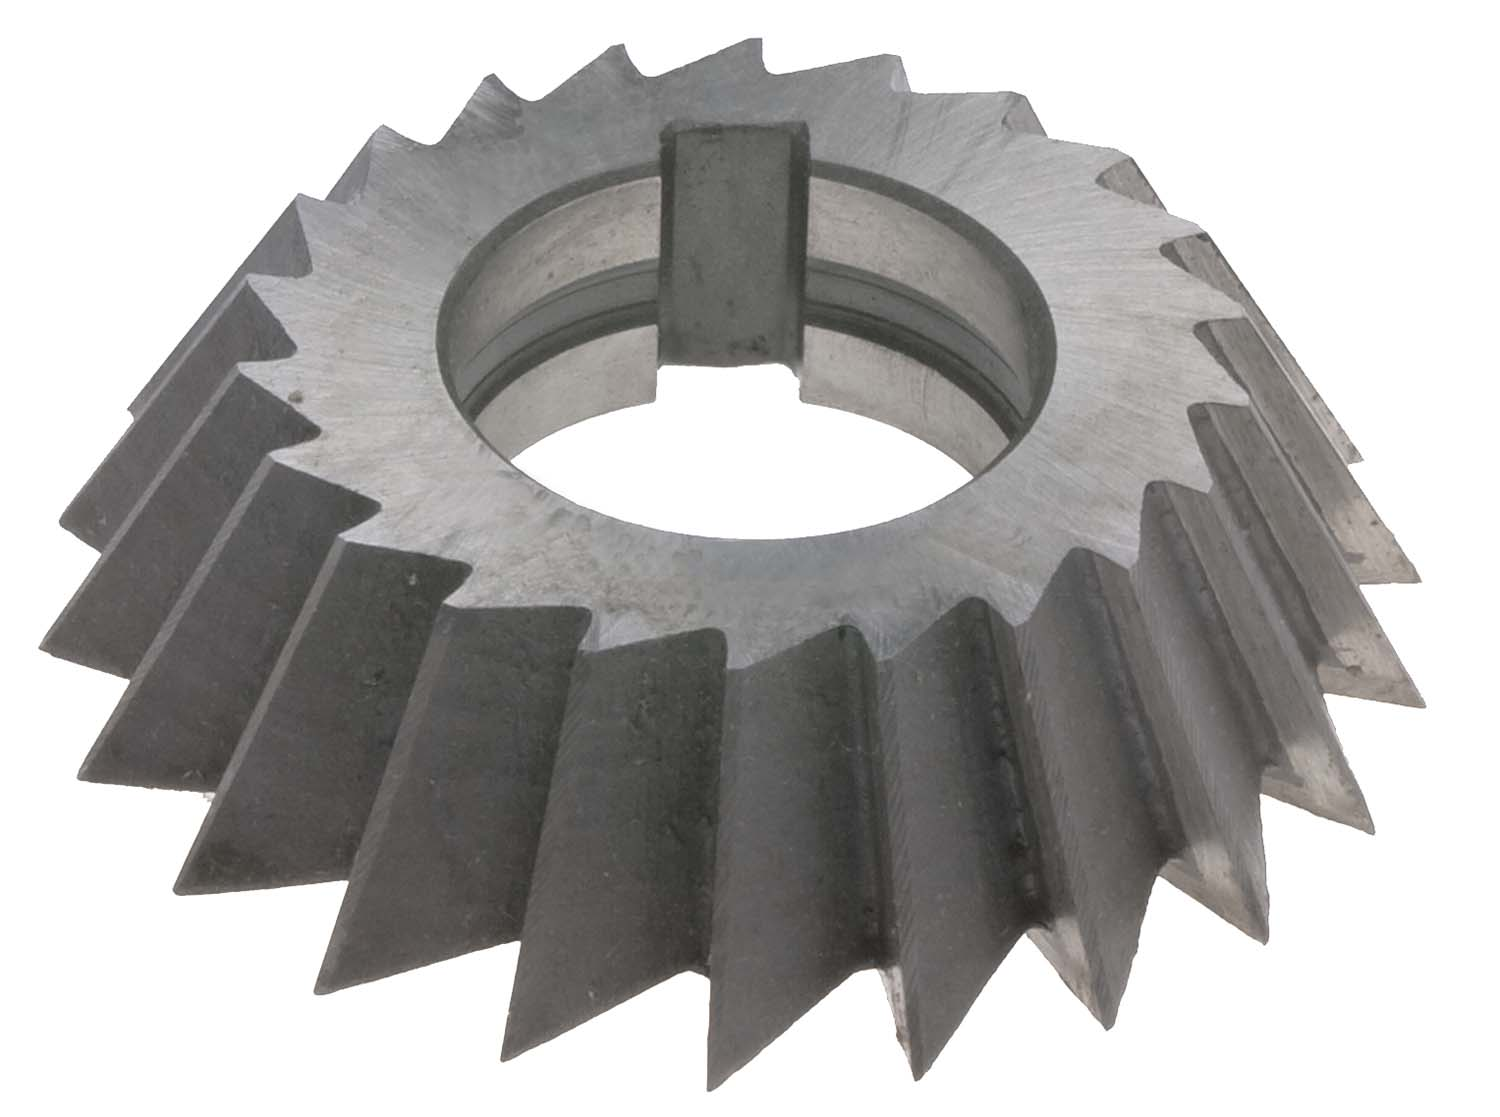 "3 X 3/4 X 1-1/4""  Right Hand 60 Degree Single Angle Cutter, High Speed Steel"